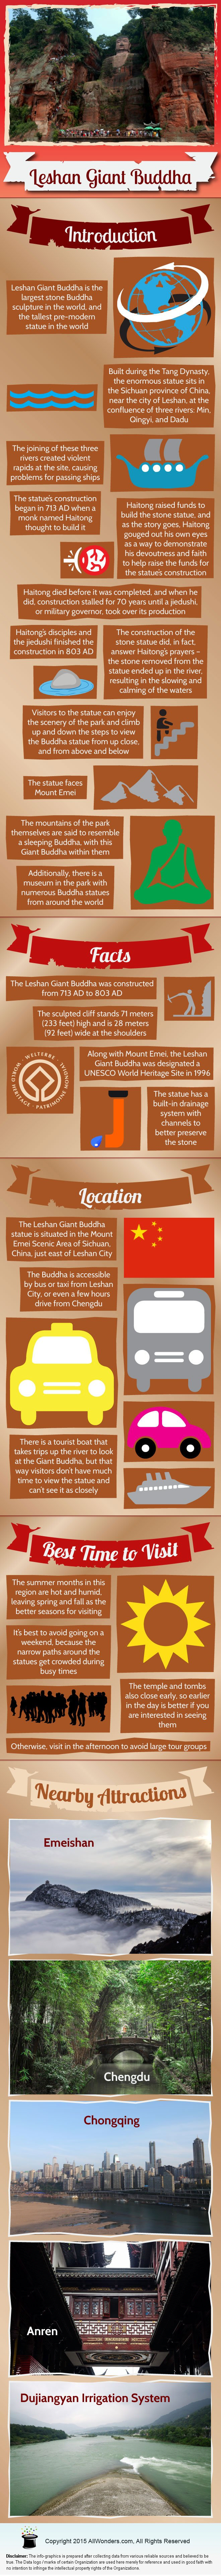 Leshan Giant Buddha - Facts & Infographic